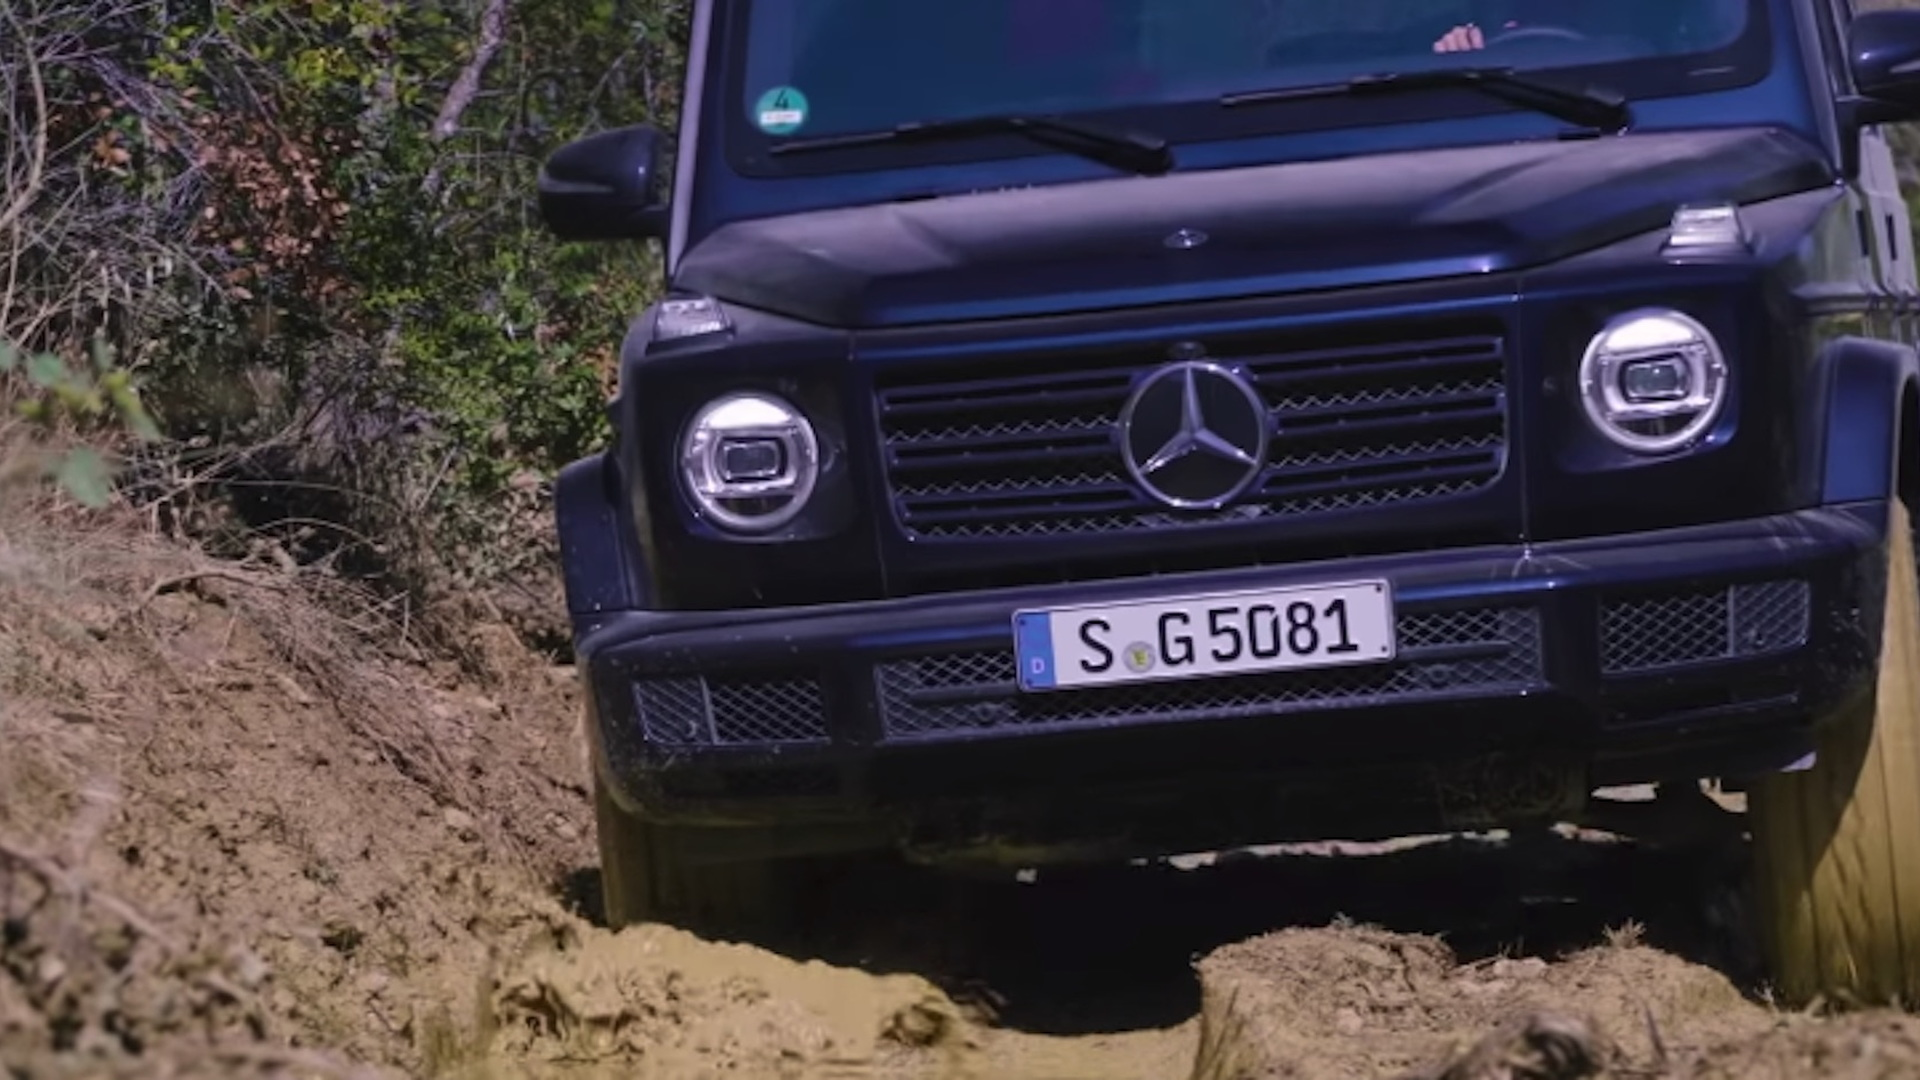 2019 Mercedes-Benz G-Class in the mud